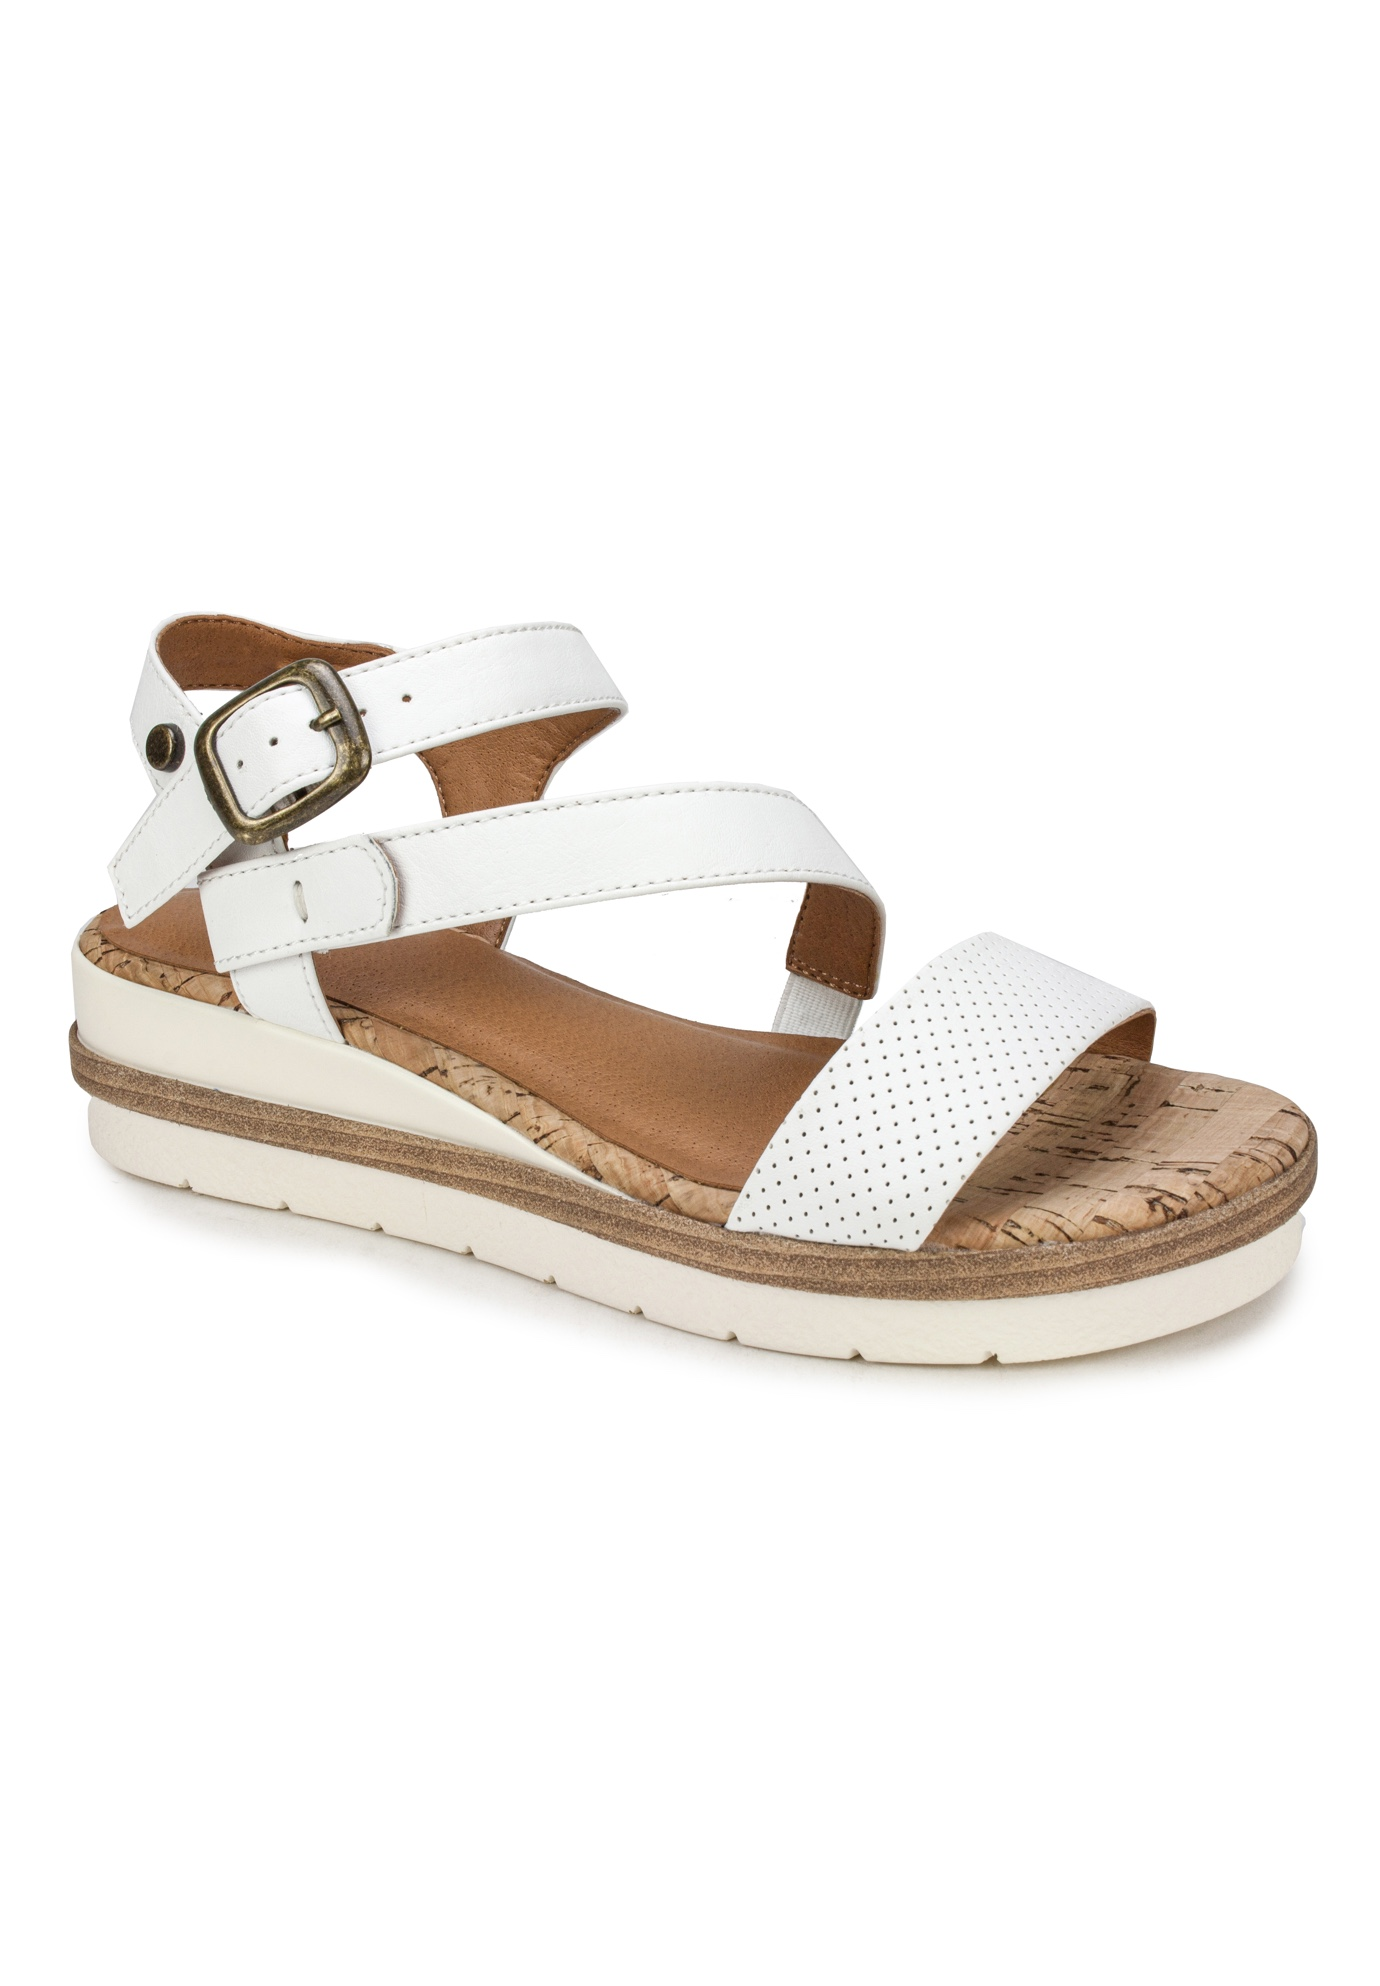 Nelson Sandal by White Mountain,